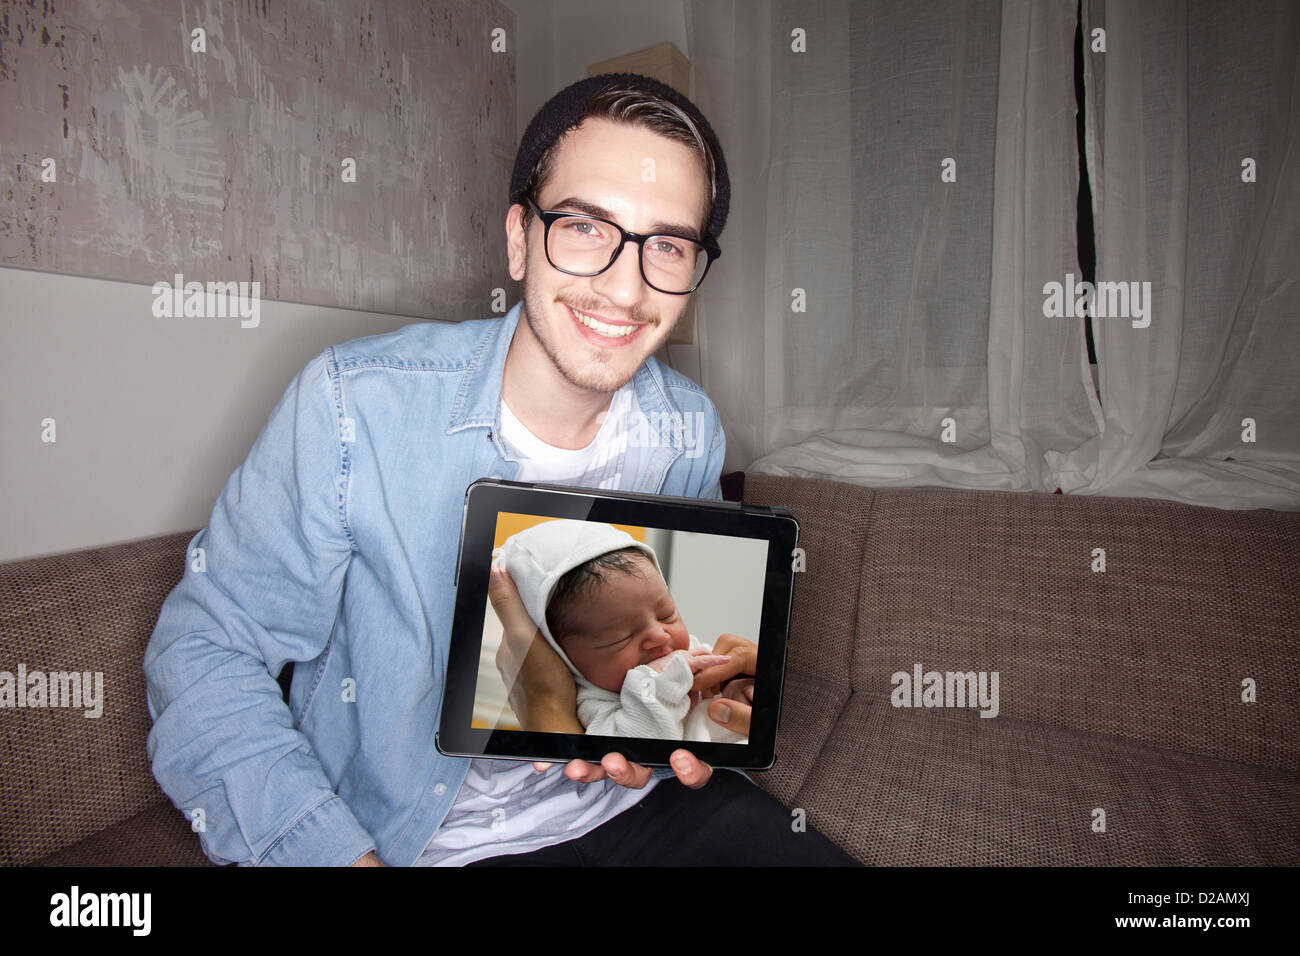 Man with newborn on tablet computer Stock Photo